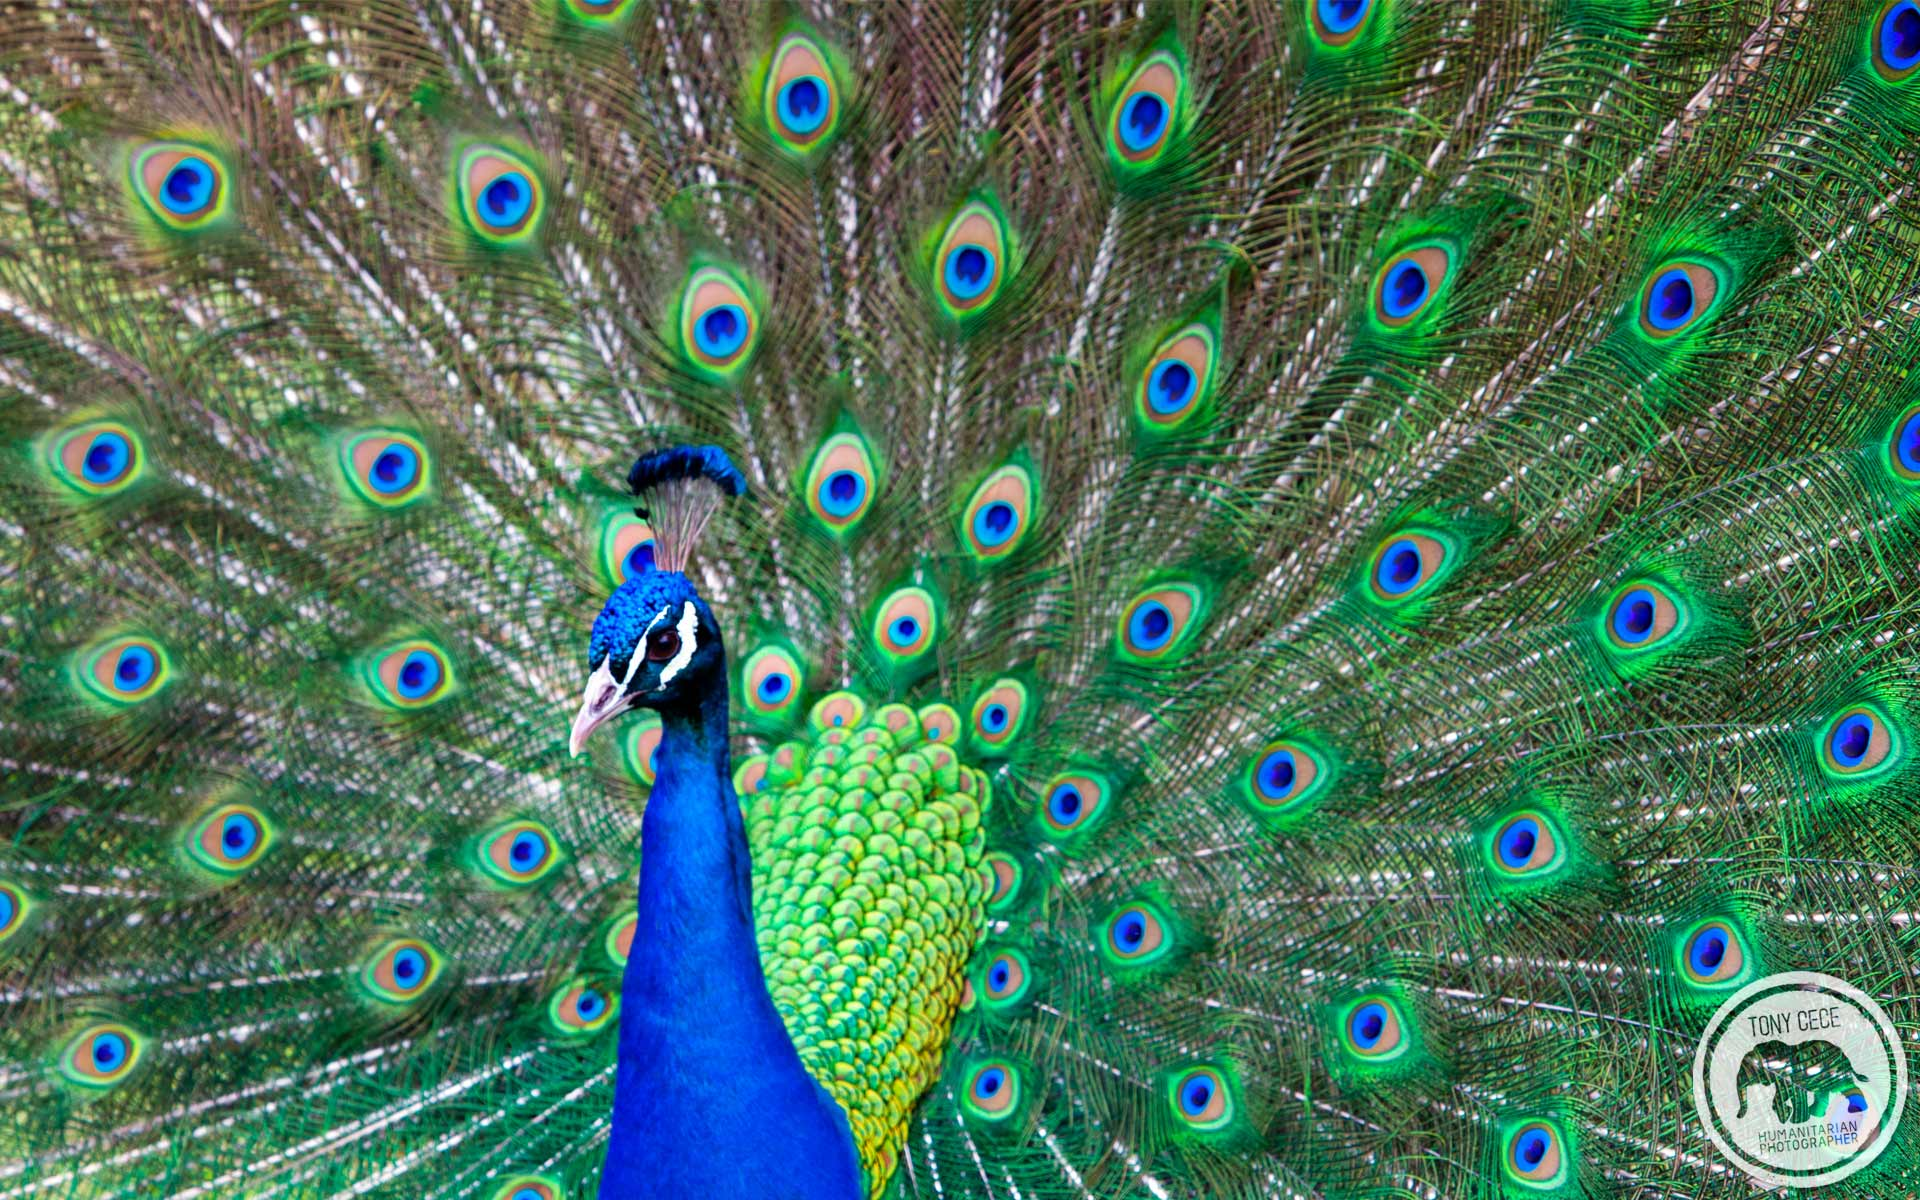 Peacock Art Photography Wallpaper Hq Backgrounds: Peacock Wallpapers